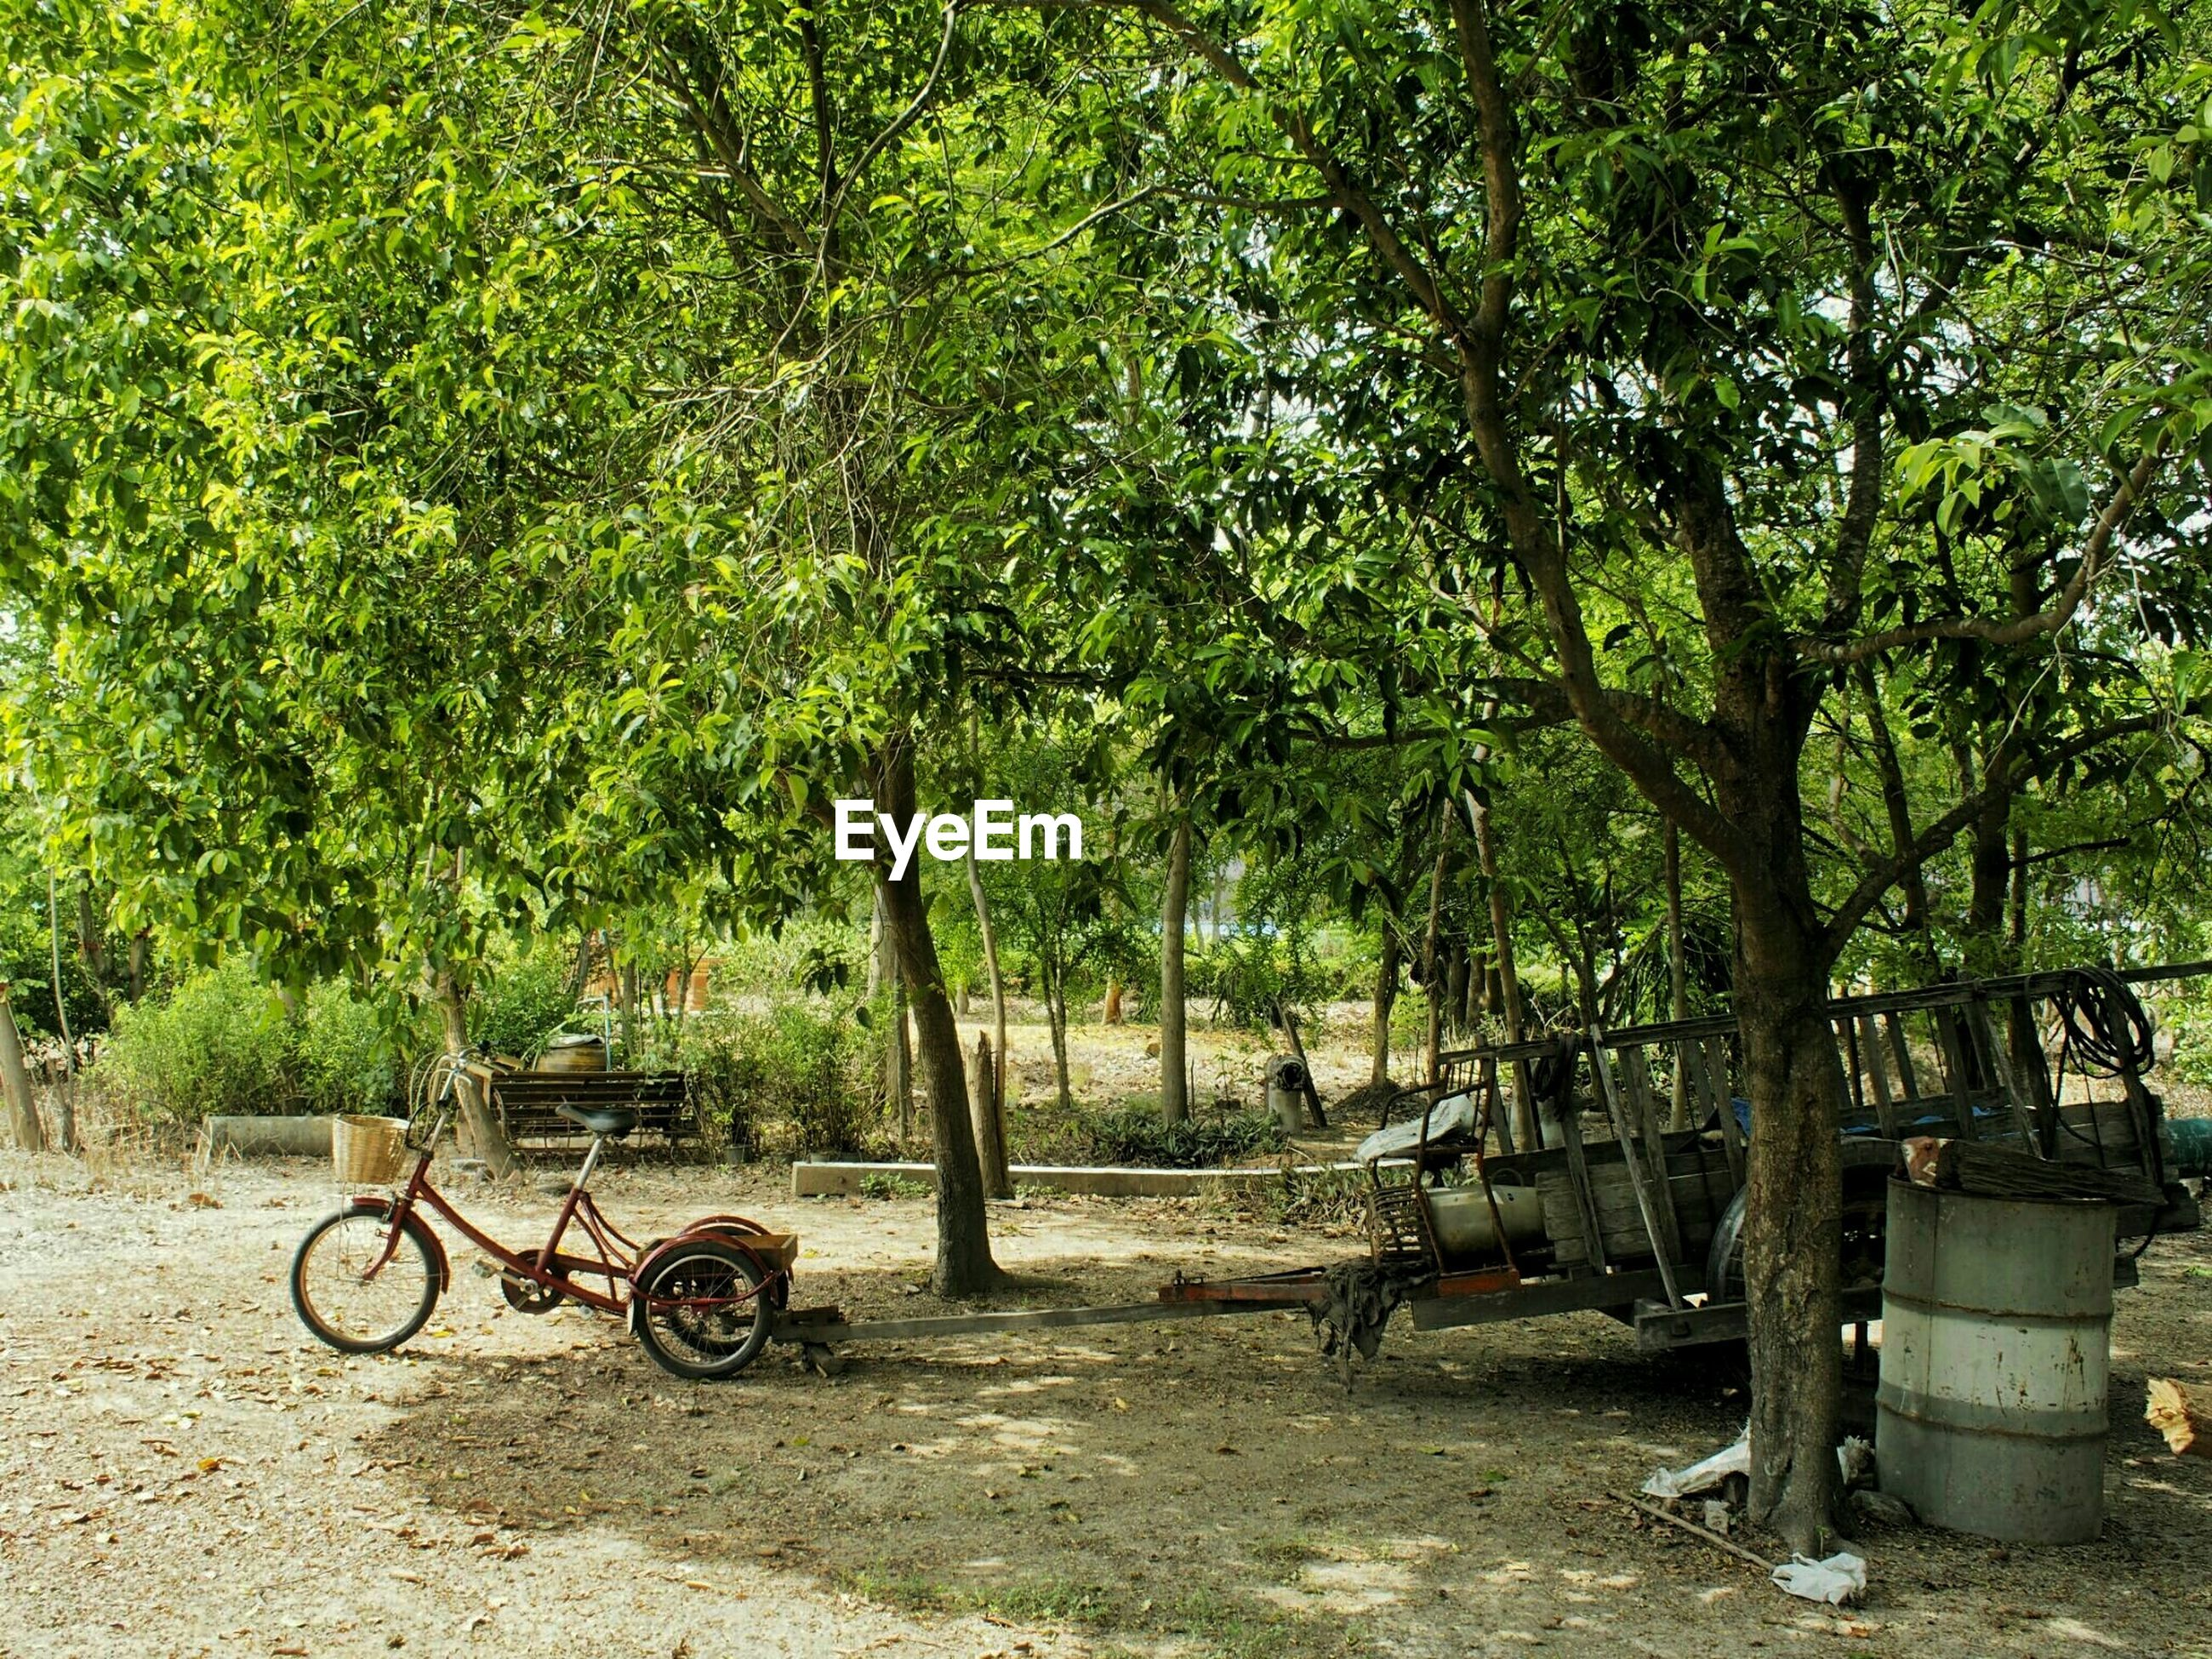 Tricycle parked under trees in garden